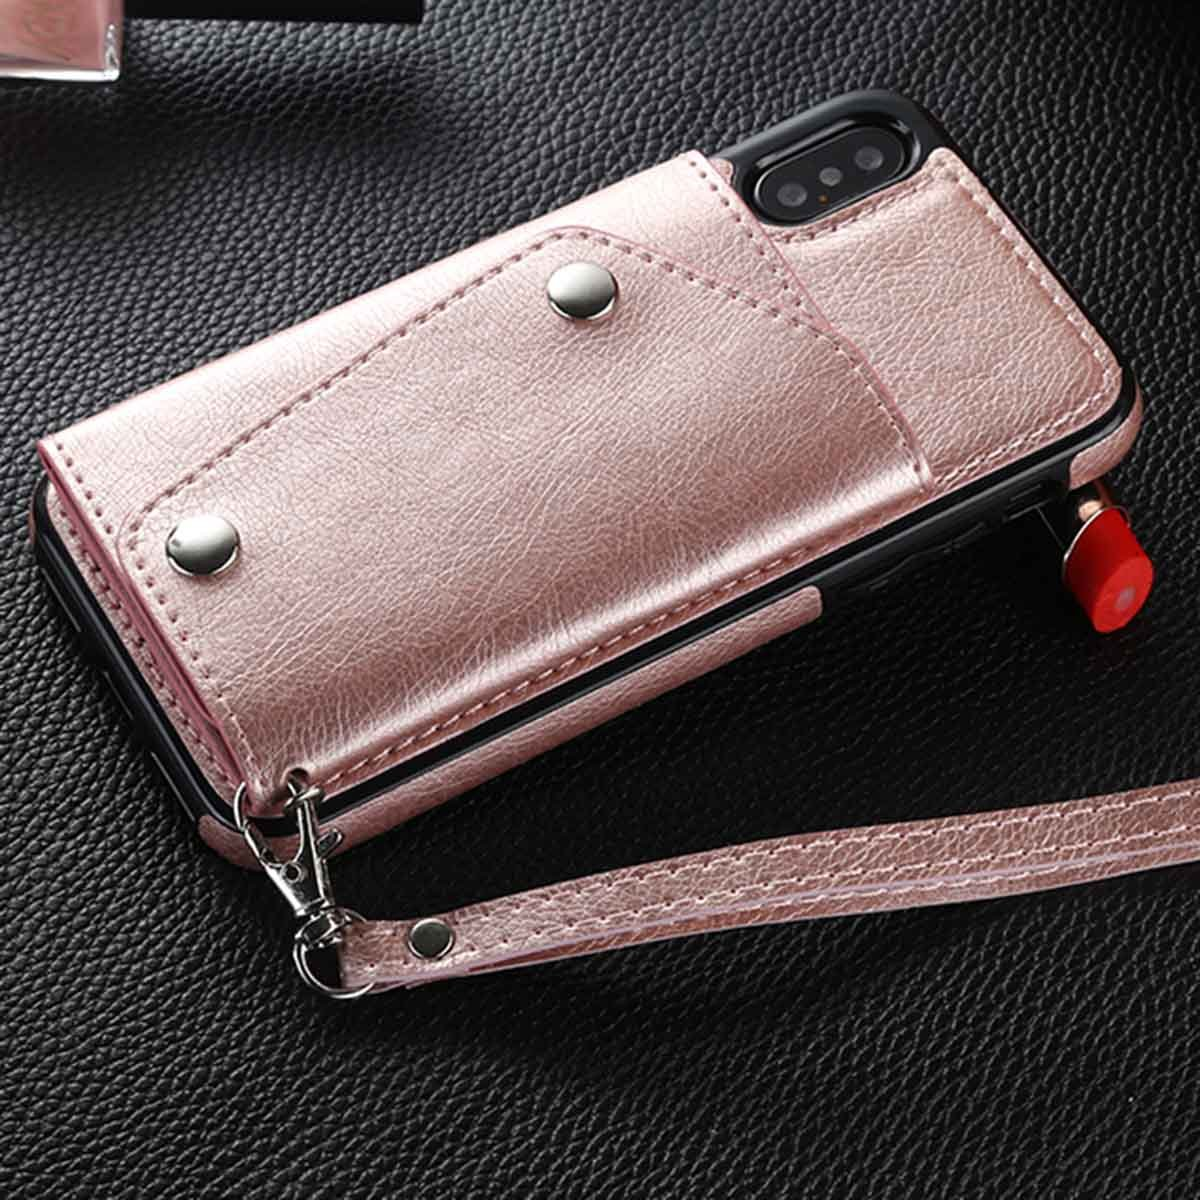 iPhone X Case, iPhone X Cases, i-Dawn Wallet Slim Leather Case with Foldable Kickstand Feature Multiple Card Slots Wrist Strap Protective Case Cover for Apple iPhone X -Rose Gold